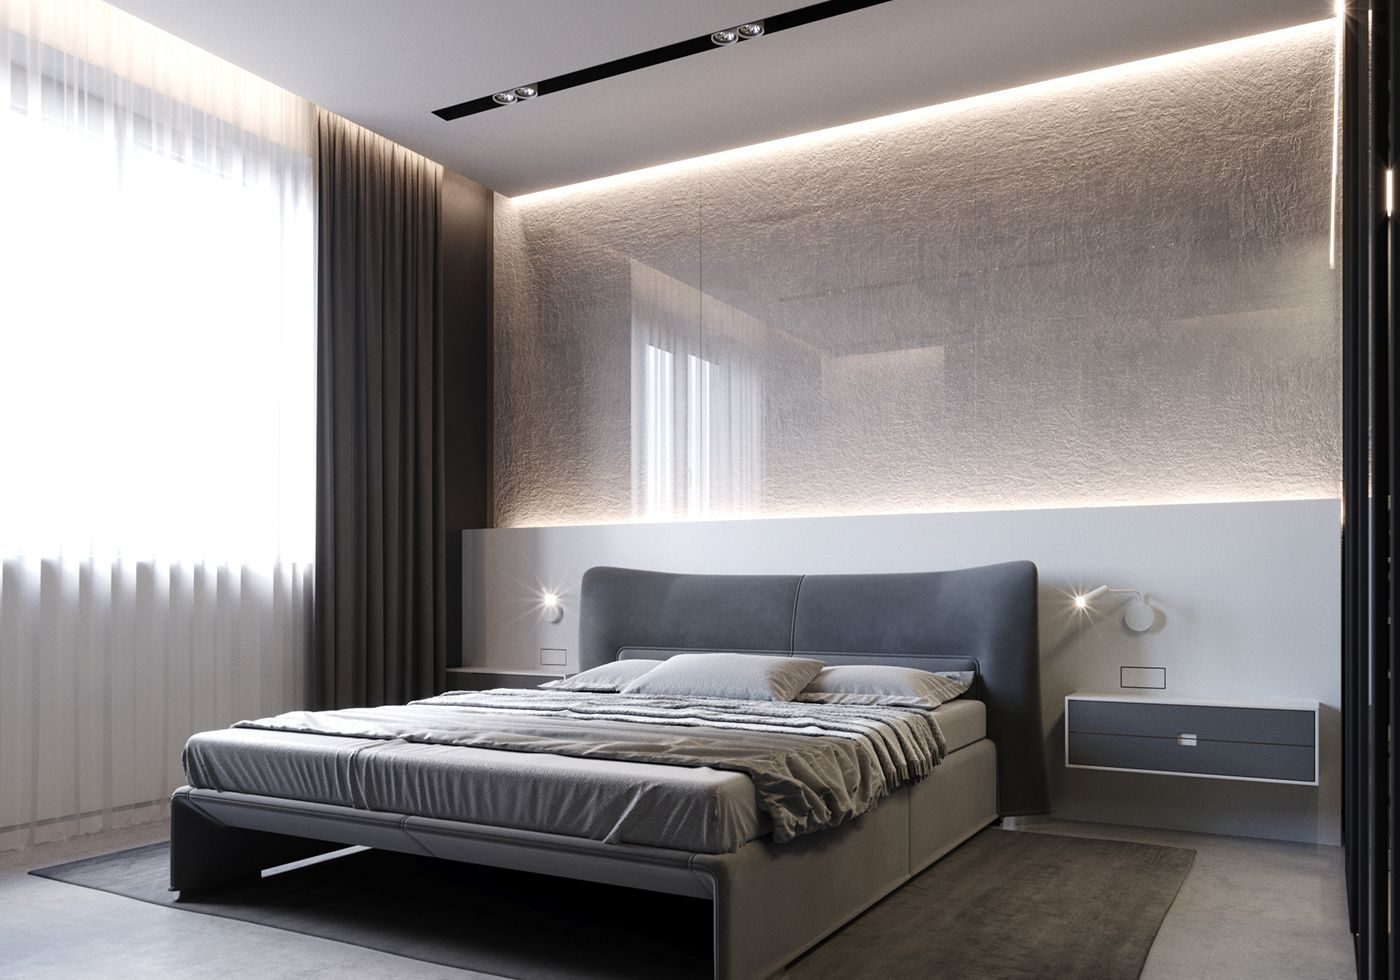 Bedroom Furniture Oahu minimal pt.2 on behance ~ great pin! for oahu architectural design